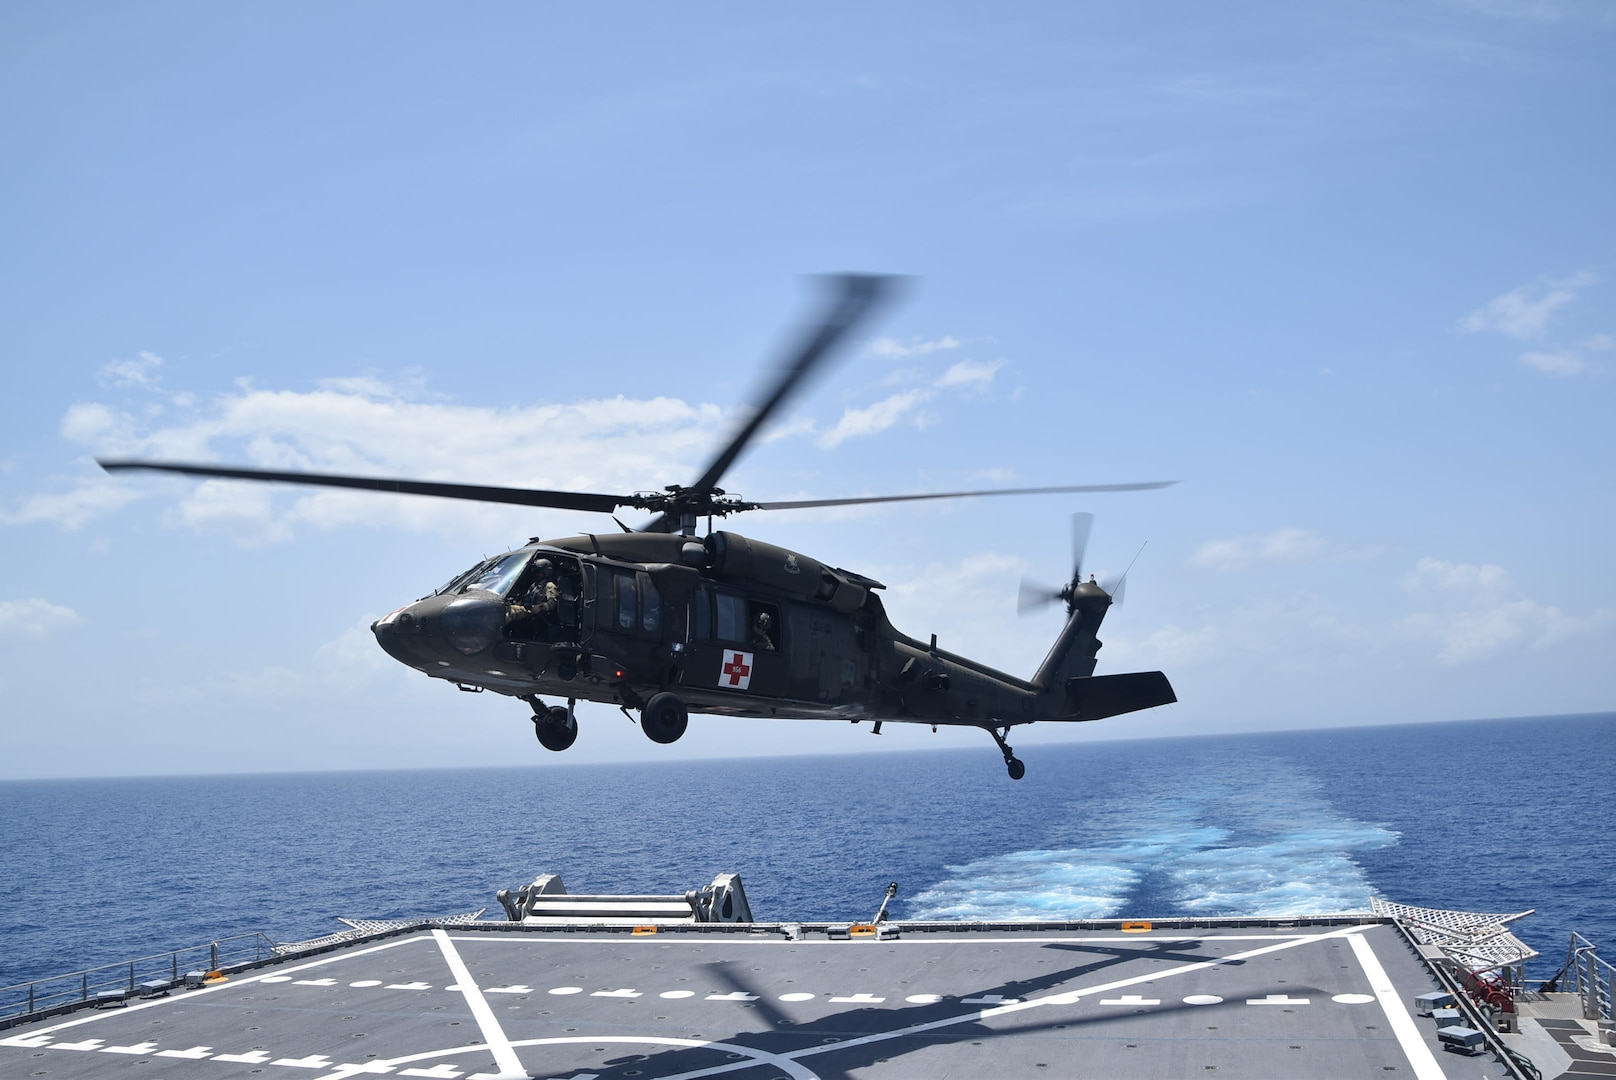 A U.S. Army UH-60 Blackhawk helicopter takes off from the Spearhead-class expeditionary fast transport ship USNS Burlington (T-EPF 10) after refueling, Aug. 21, 2021.